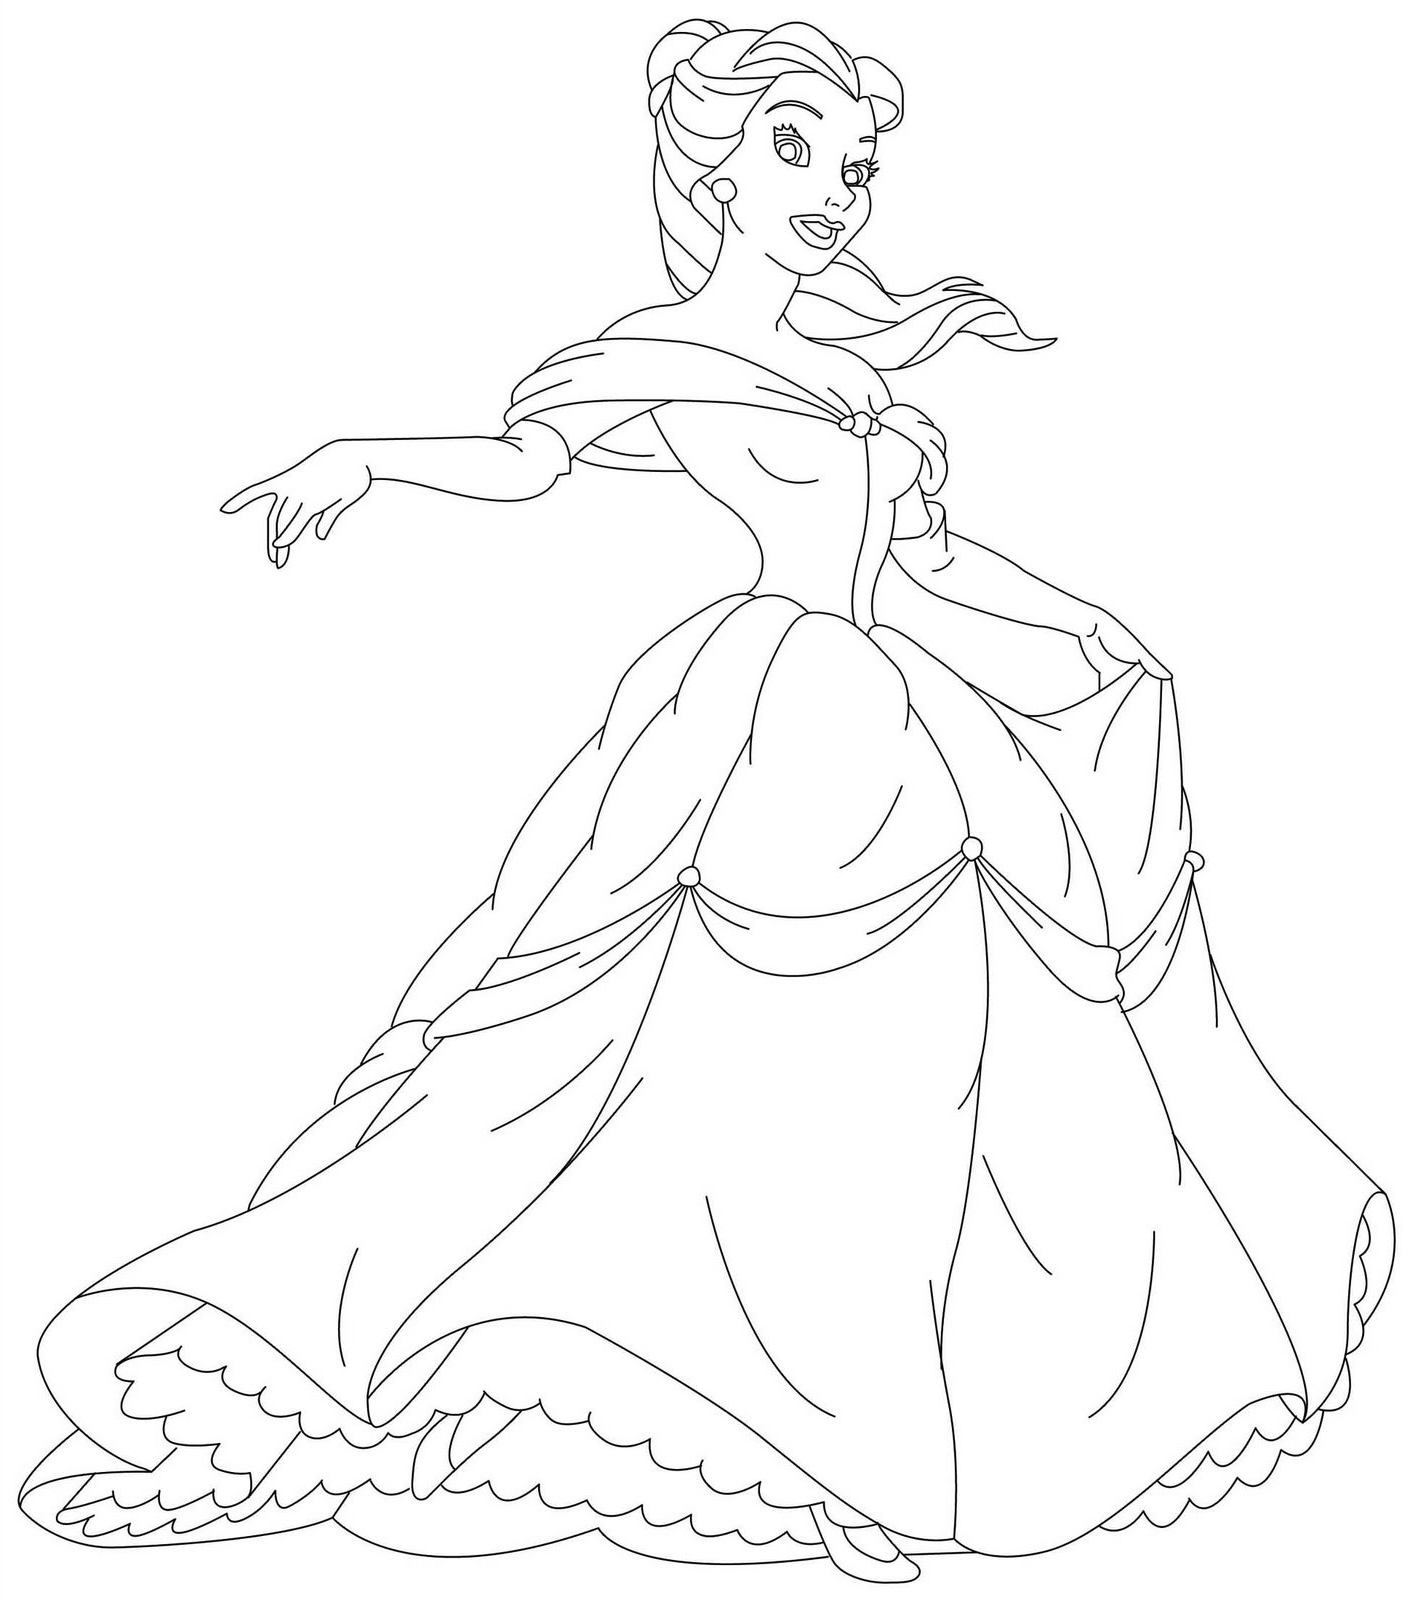 Free color pages princess - Disney Princess Online Coloring Pages